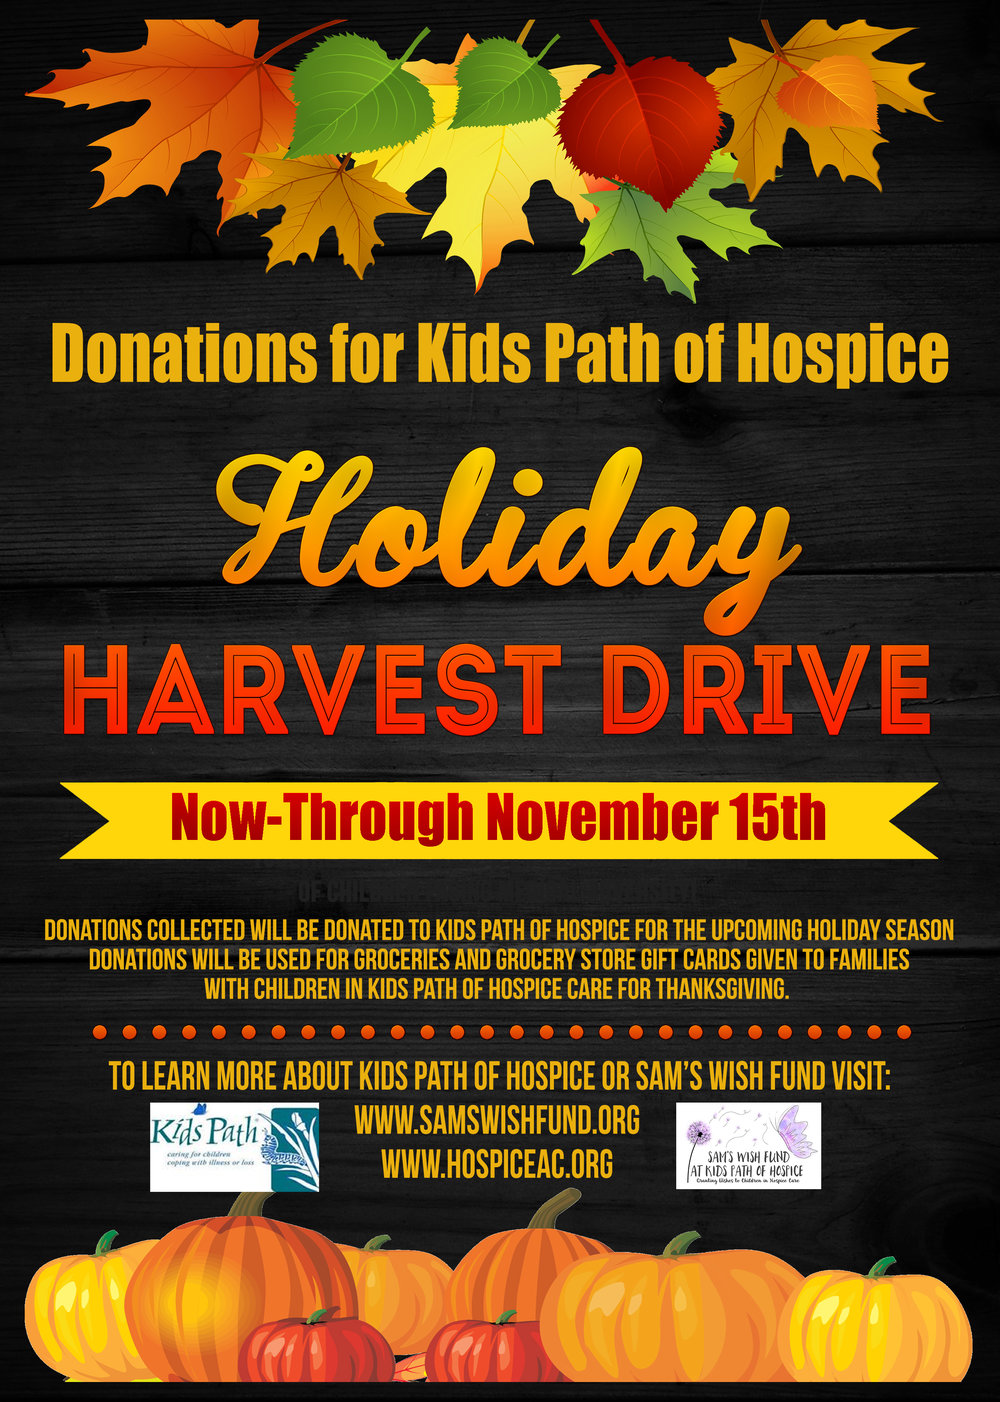 Donations may be dropped off at Maple View Farm Ice Cream 6900 Rocky Ridge Road Hillsborough, NC 27278 in our donation Jars.  You can also drop off grocery store gift cards at this location.  We will be listing additional drop off locations soon.    For more information contact: Allison@mapleviewfarm.com or CatesK15@gmail.com